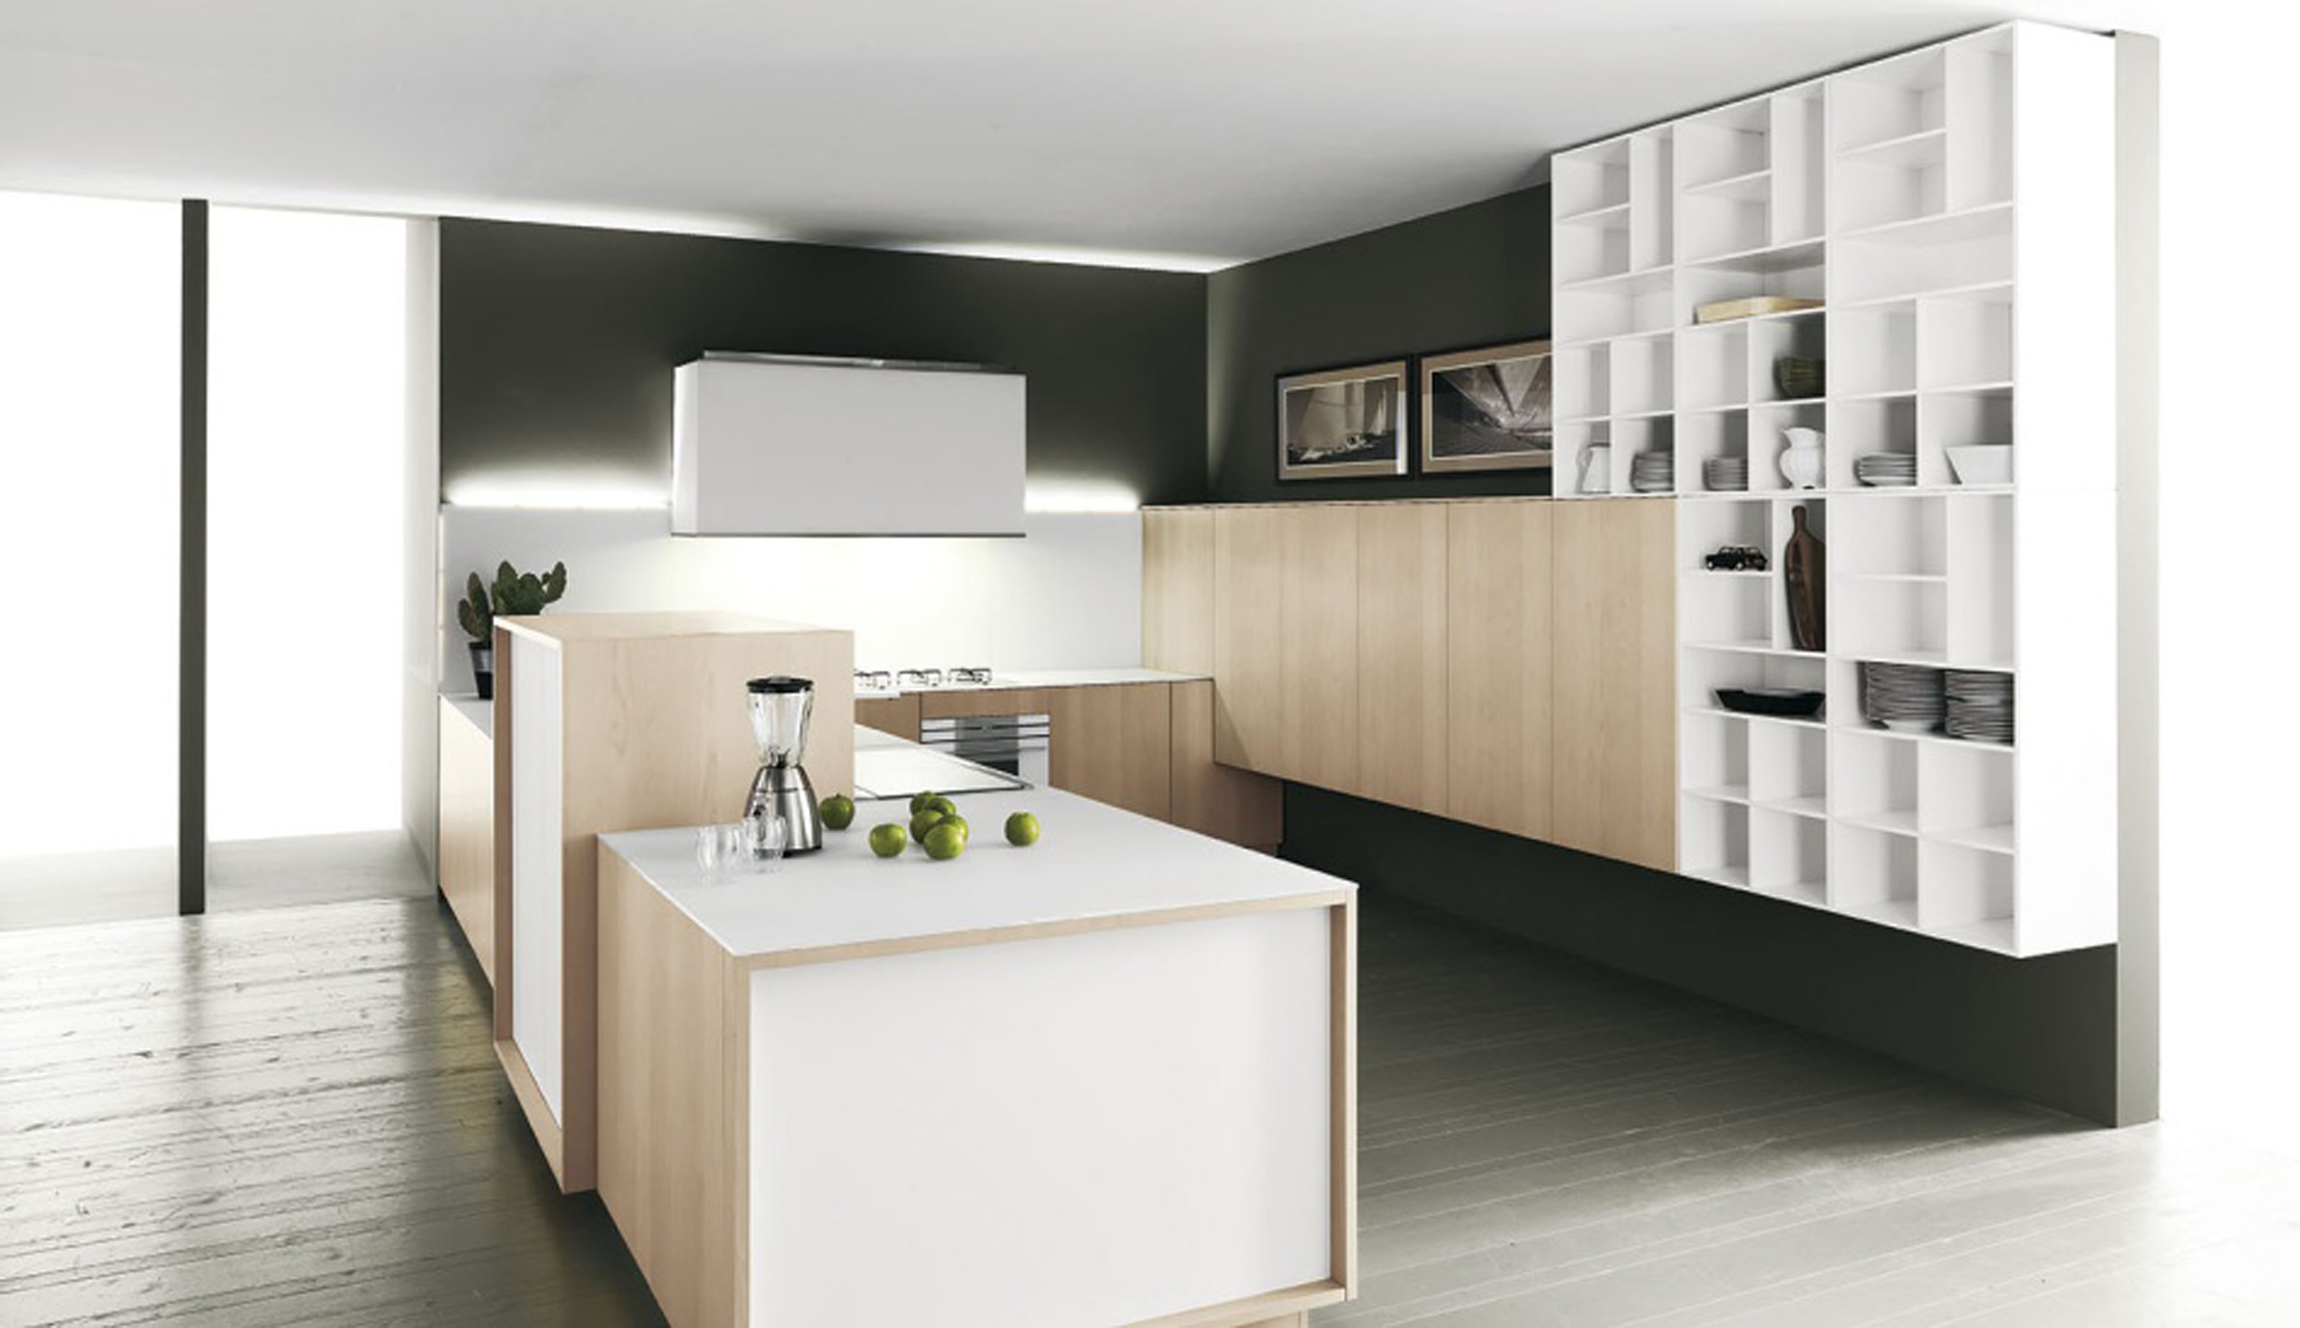 Inspiration For Contemporary Plan For Elegant Indesign Blog Post Minimalist Kitchen (View 6 of 39)